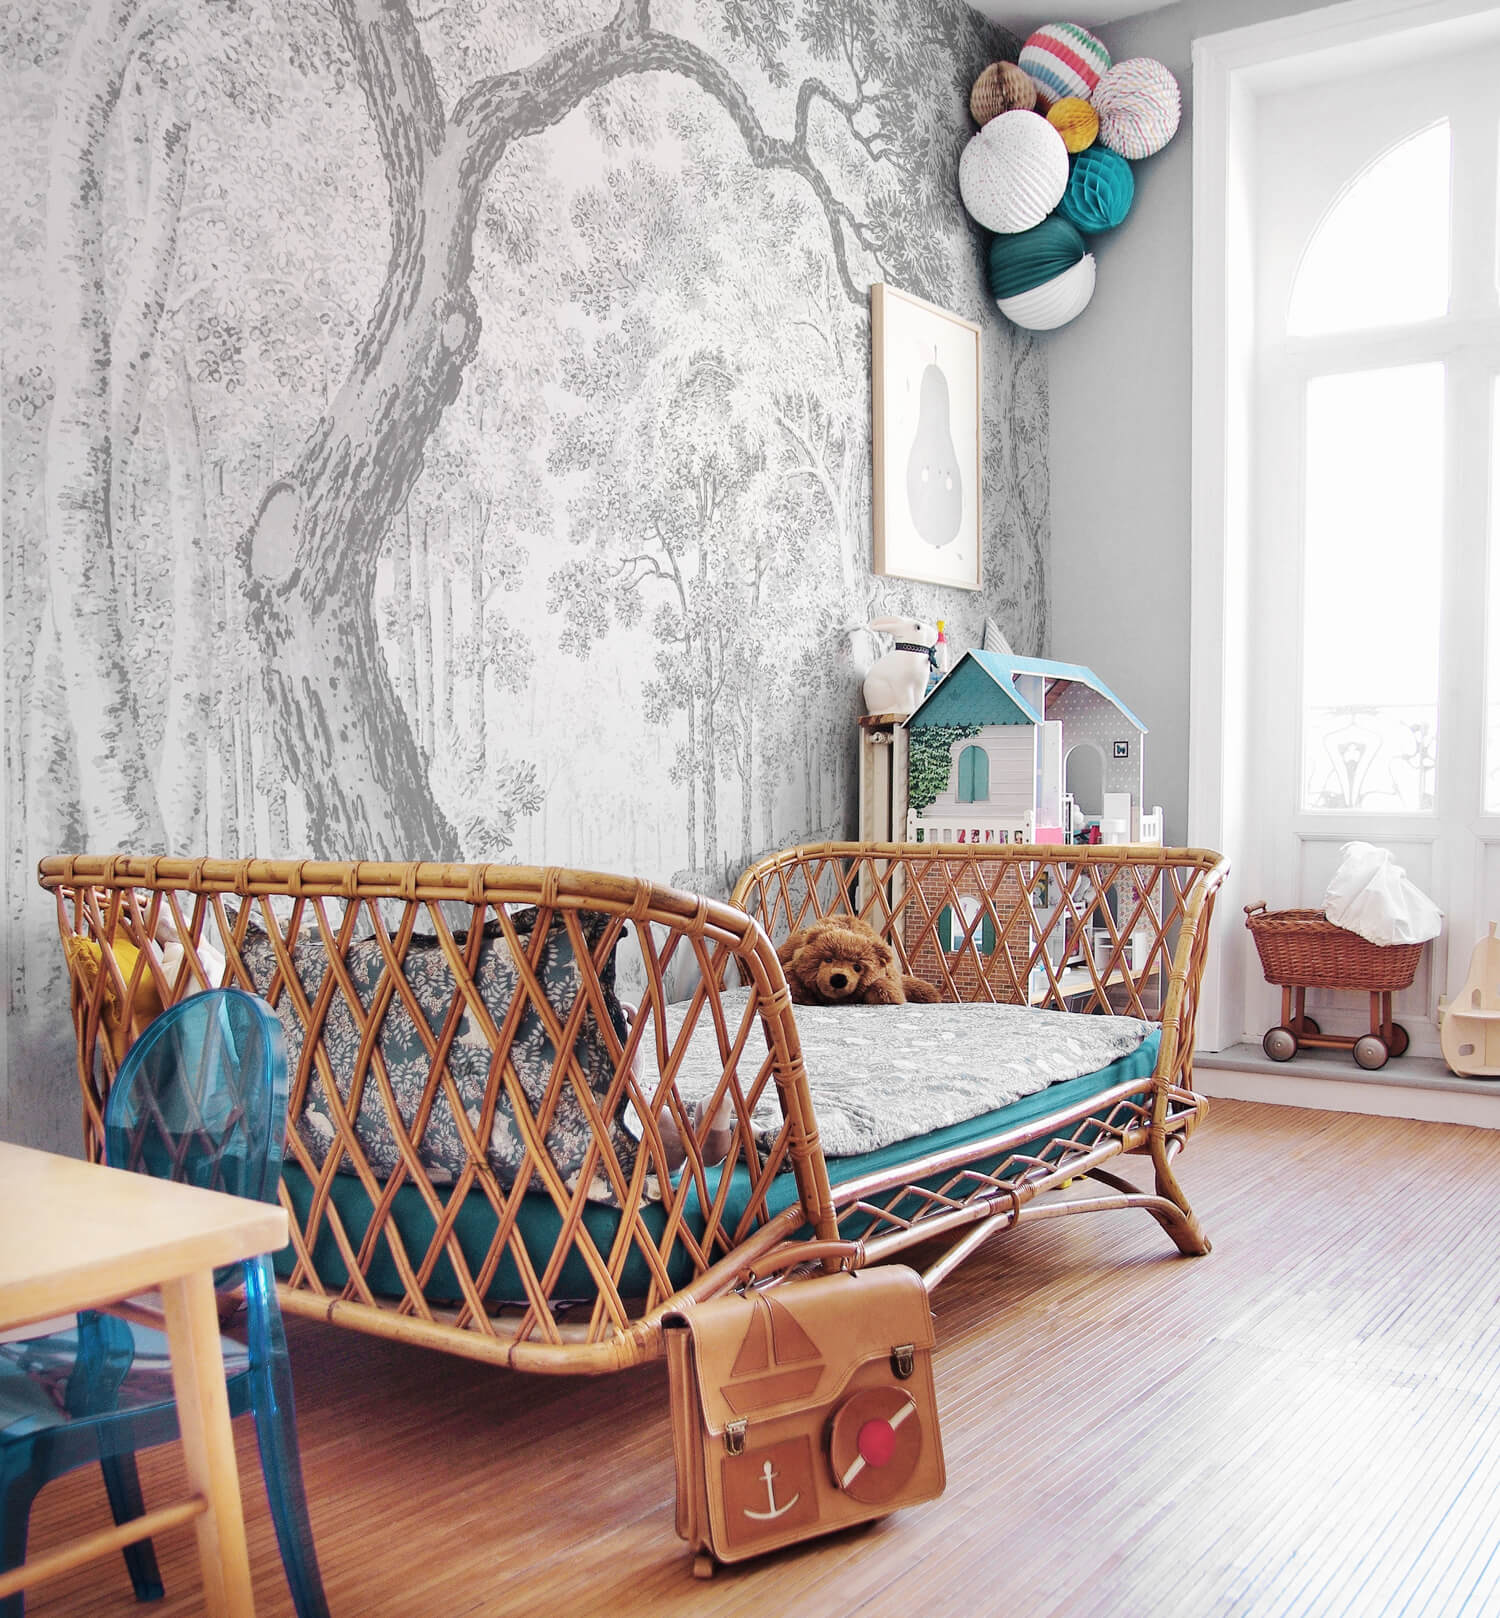 Eclectic kids room interior with woodland removable wallpaper and colorful interior decor